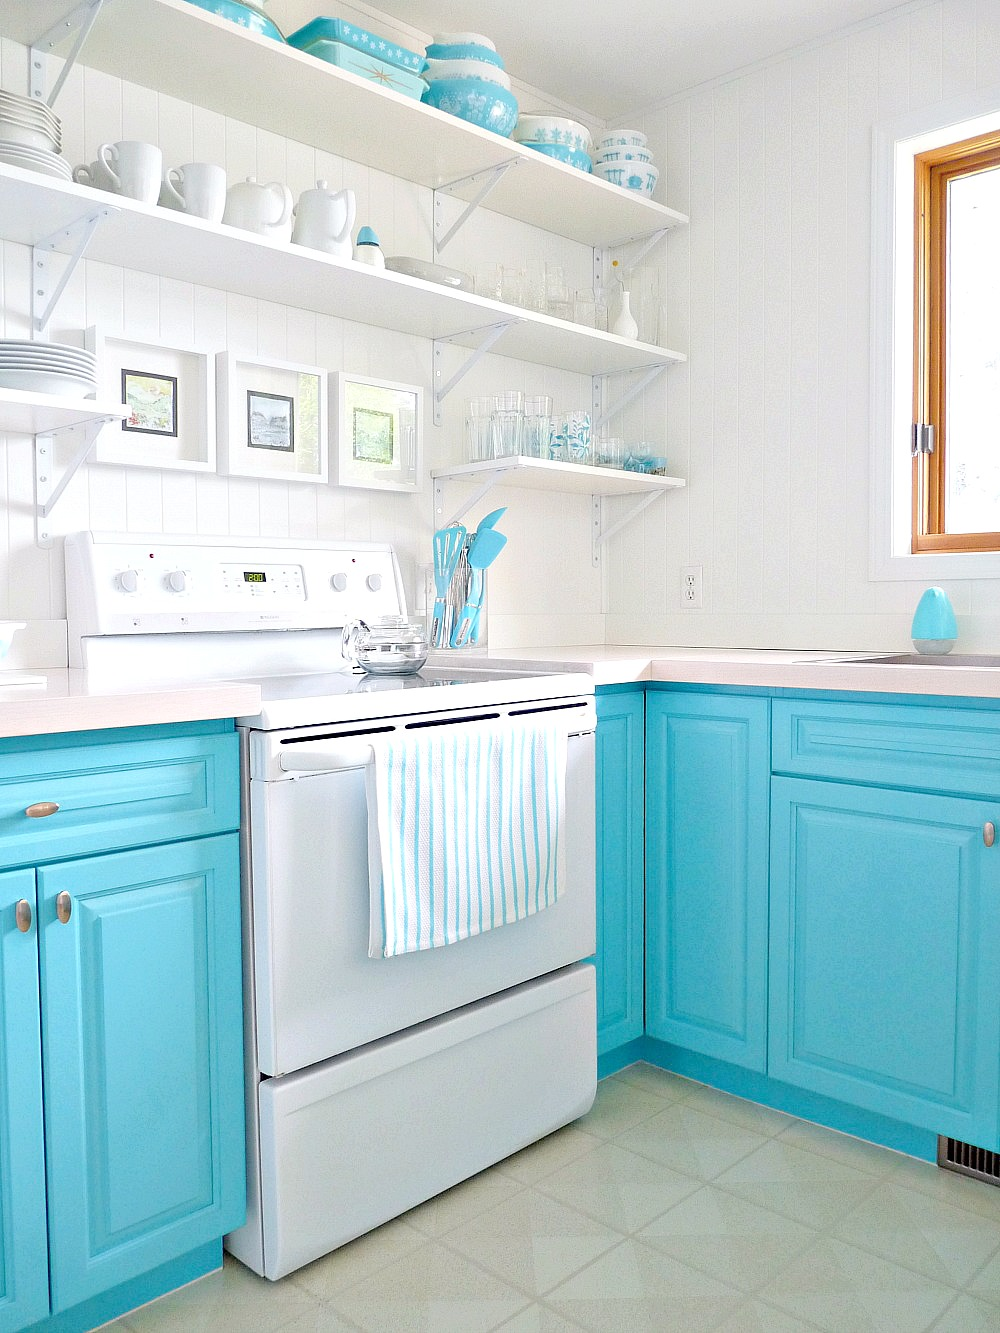 A Budget-Friendly Kitchen Makeover with Turquoise Cabinets ...